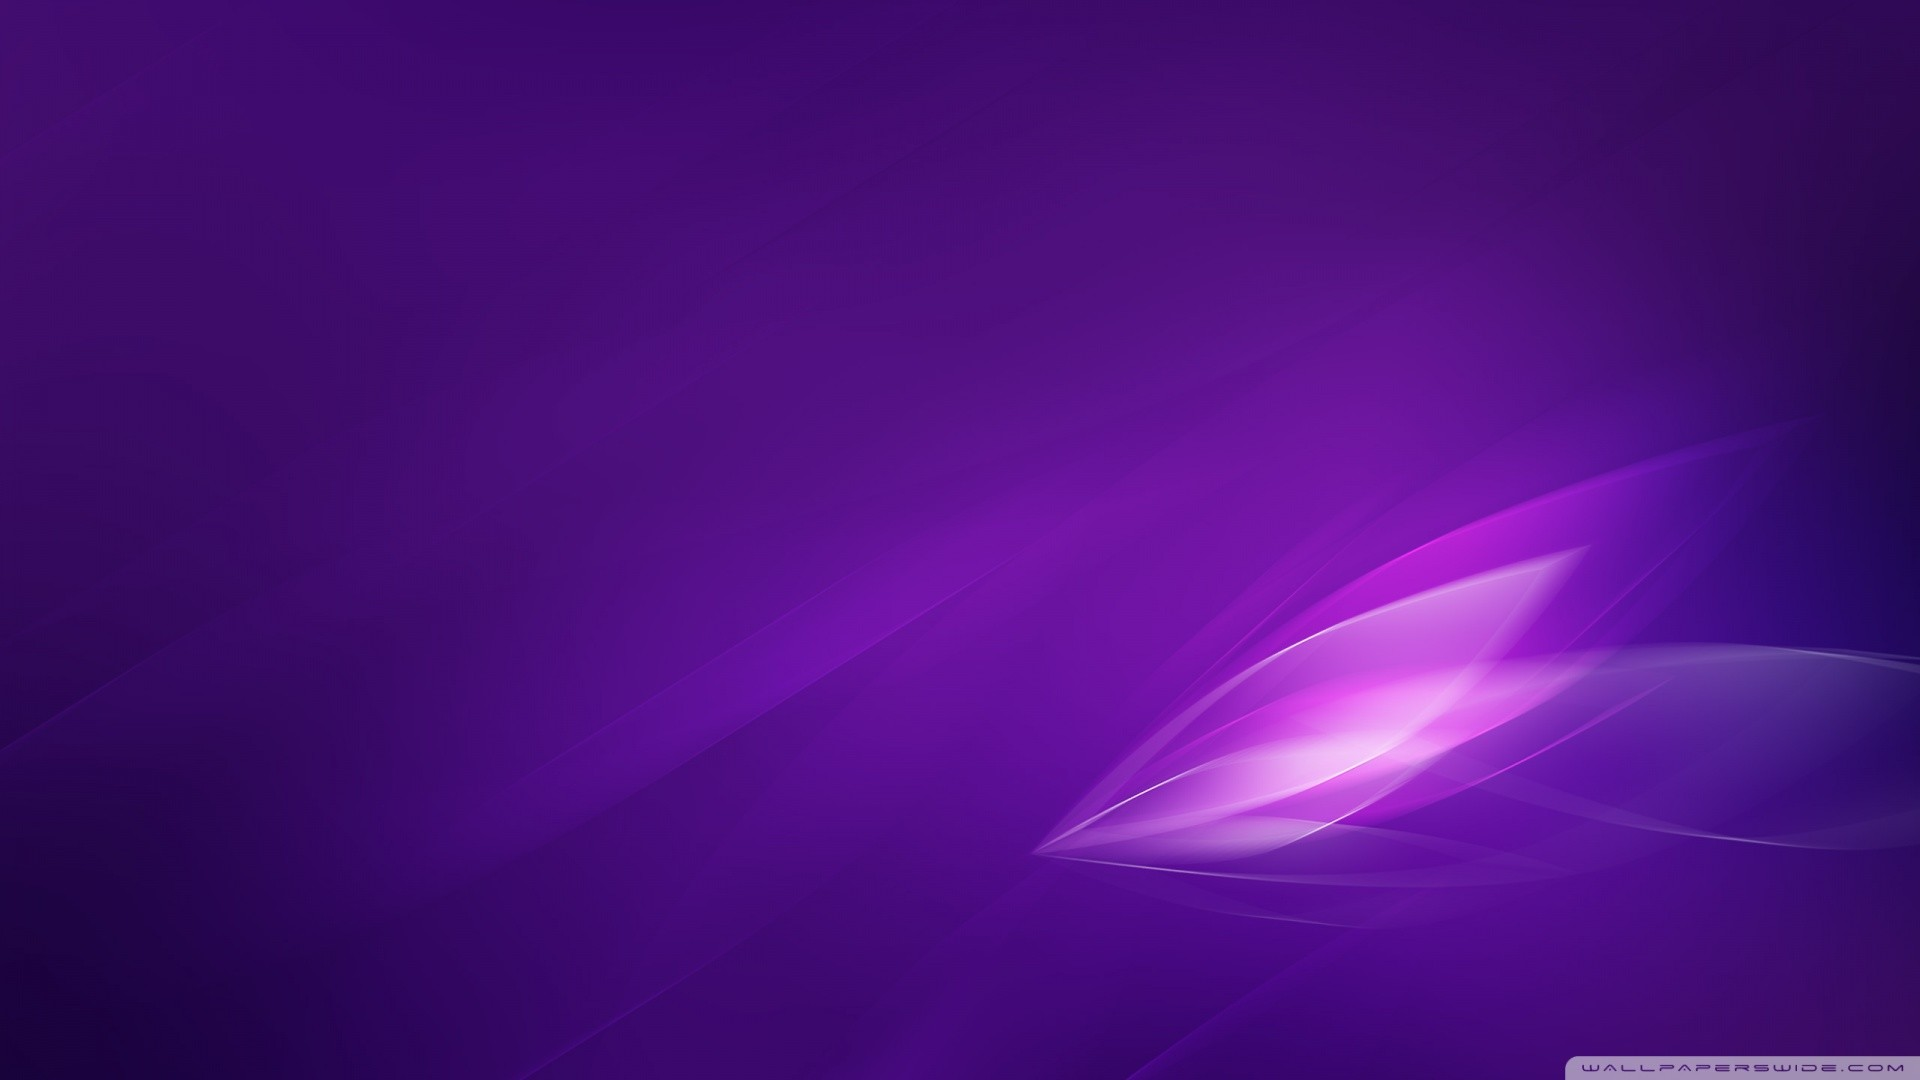 1920x1080 Purple Wallpaper 2966